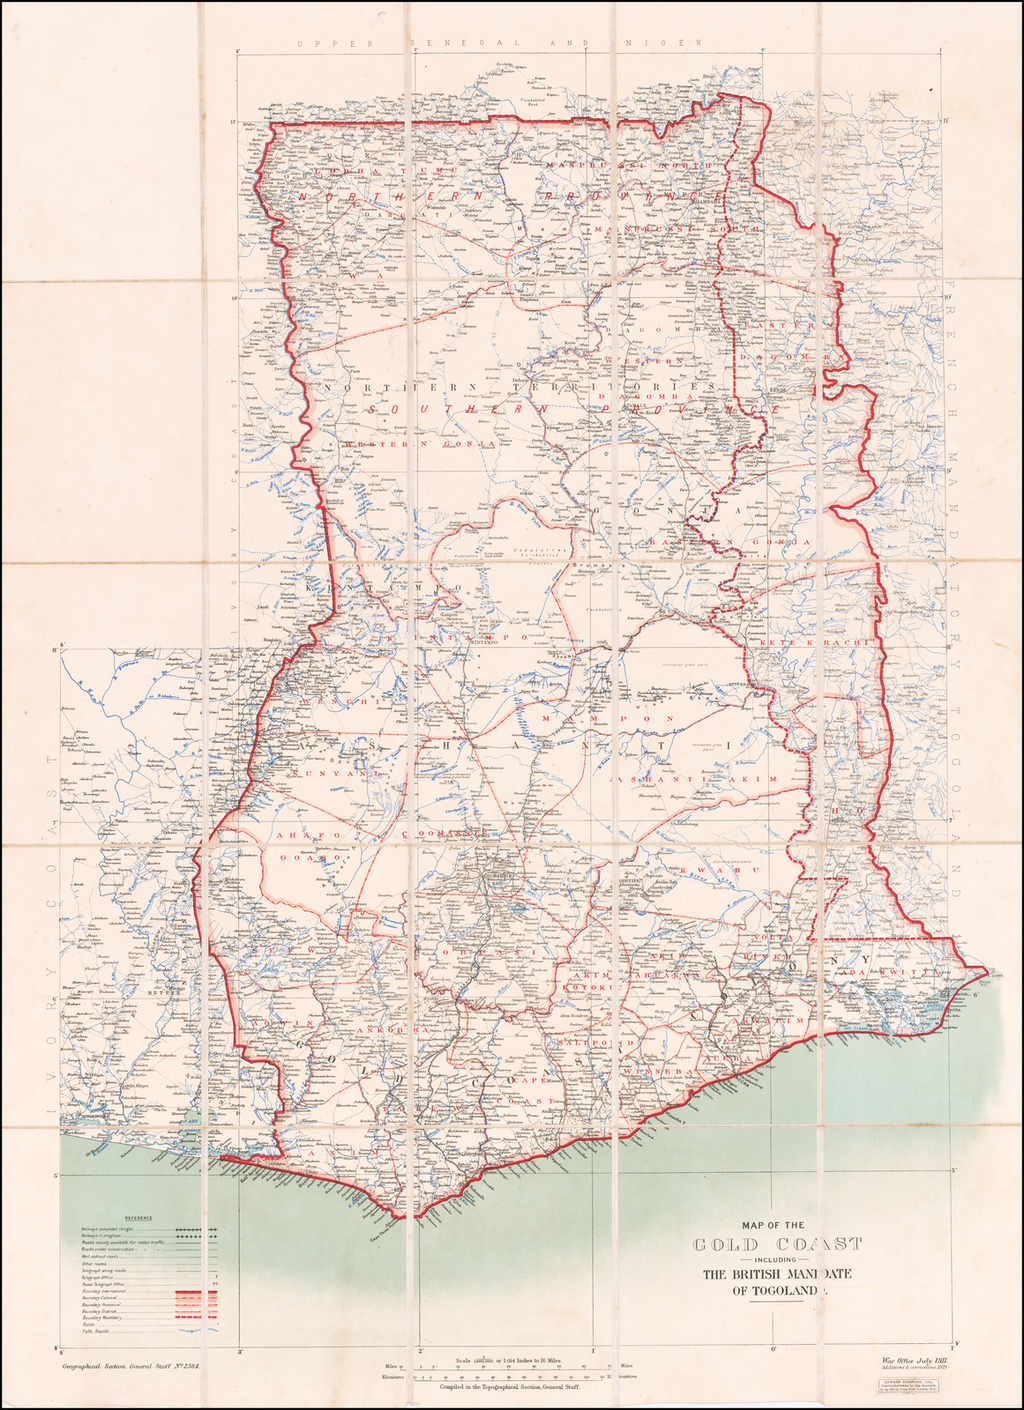 Map of the Gold Coast including the British Mandate of Togoland . . . Additions and Corrections 1921. By War Office